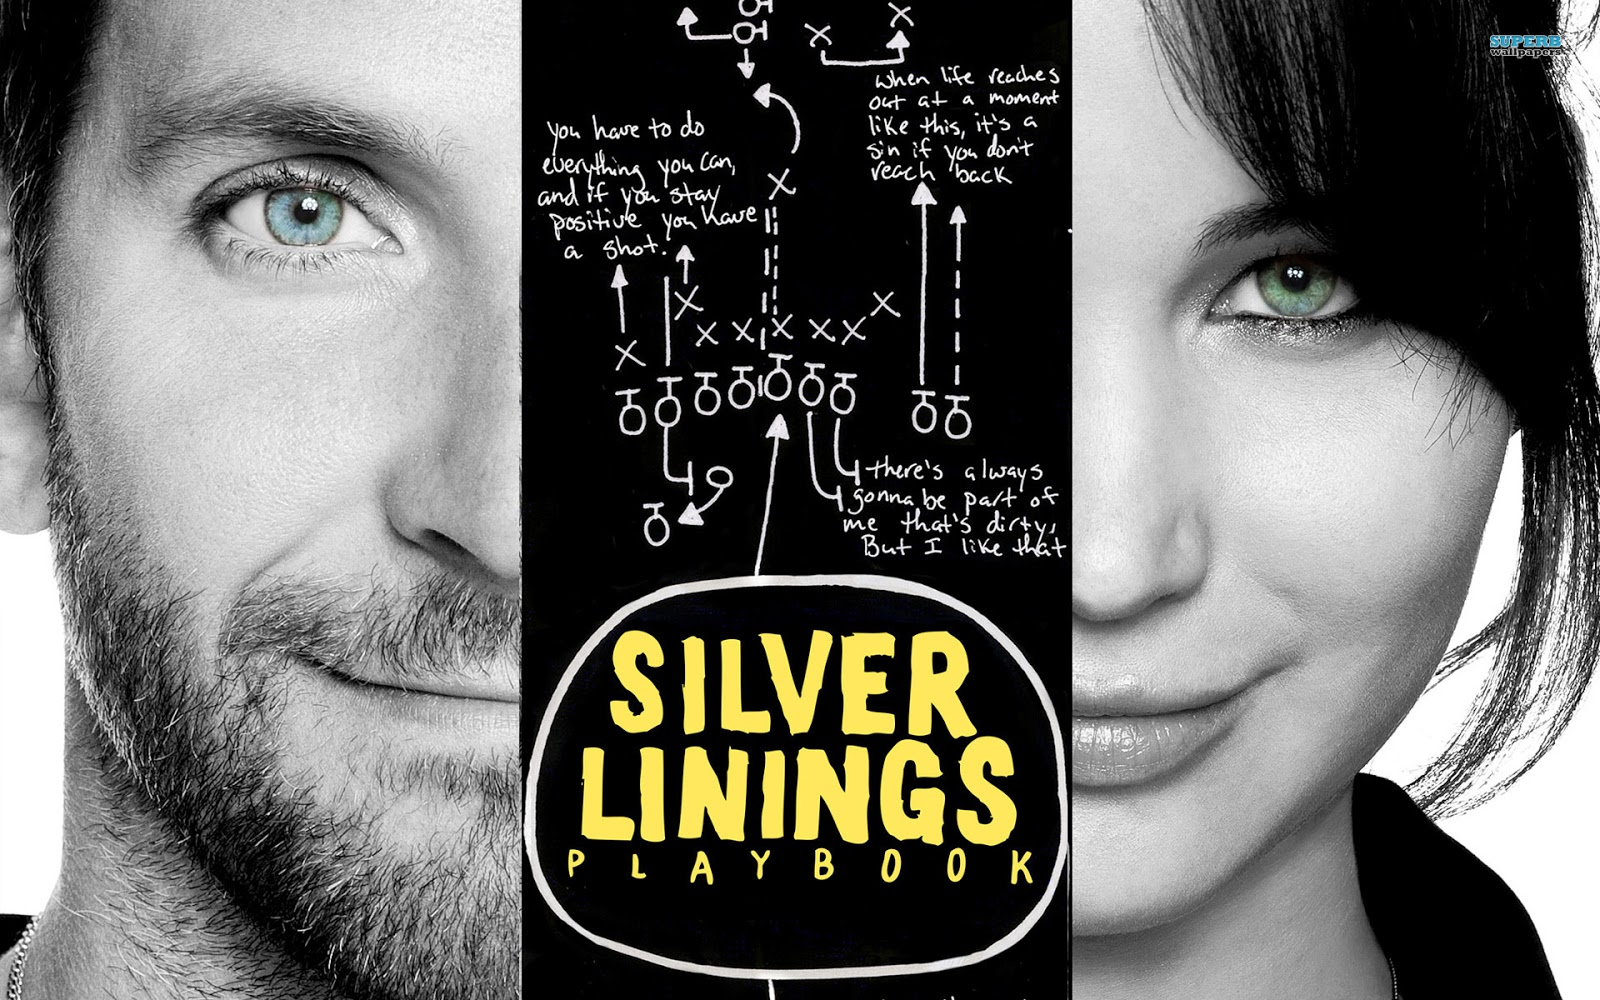 ... - The Mind Of Matt: Darkmatters Review: Silver Linings Playbook